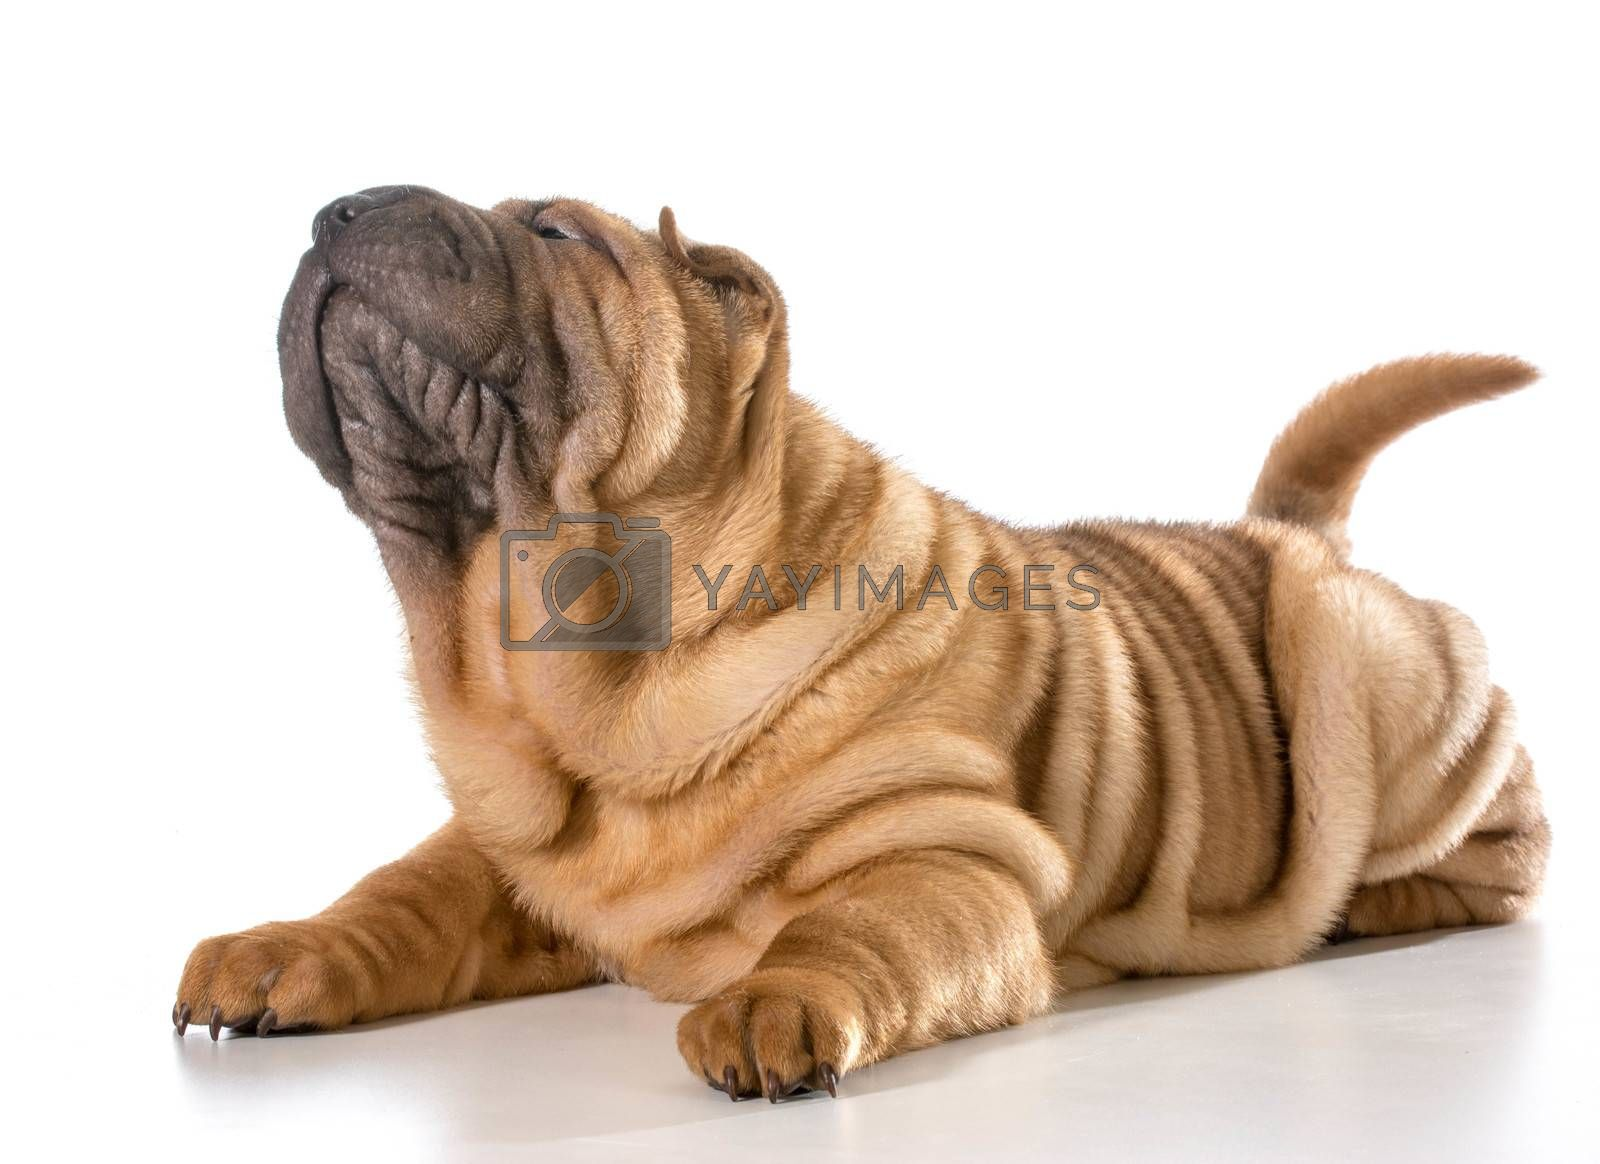 Royalty free image of chinese shar pei by willeecole123